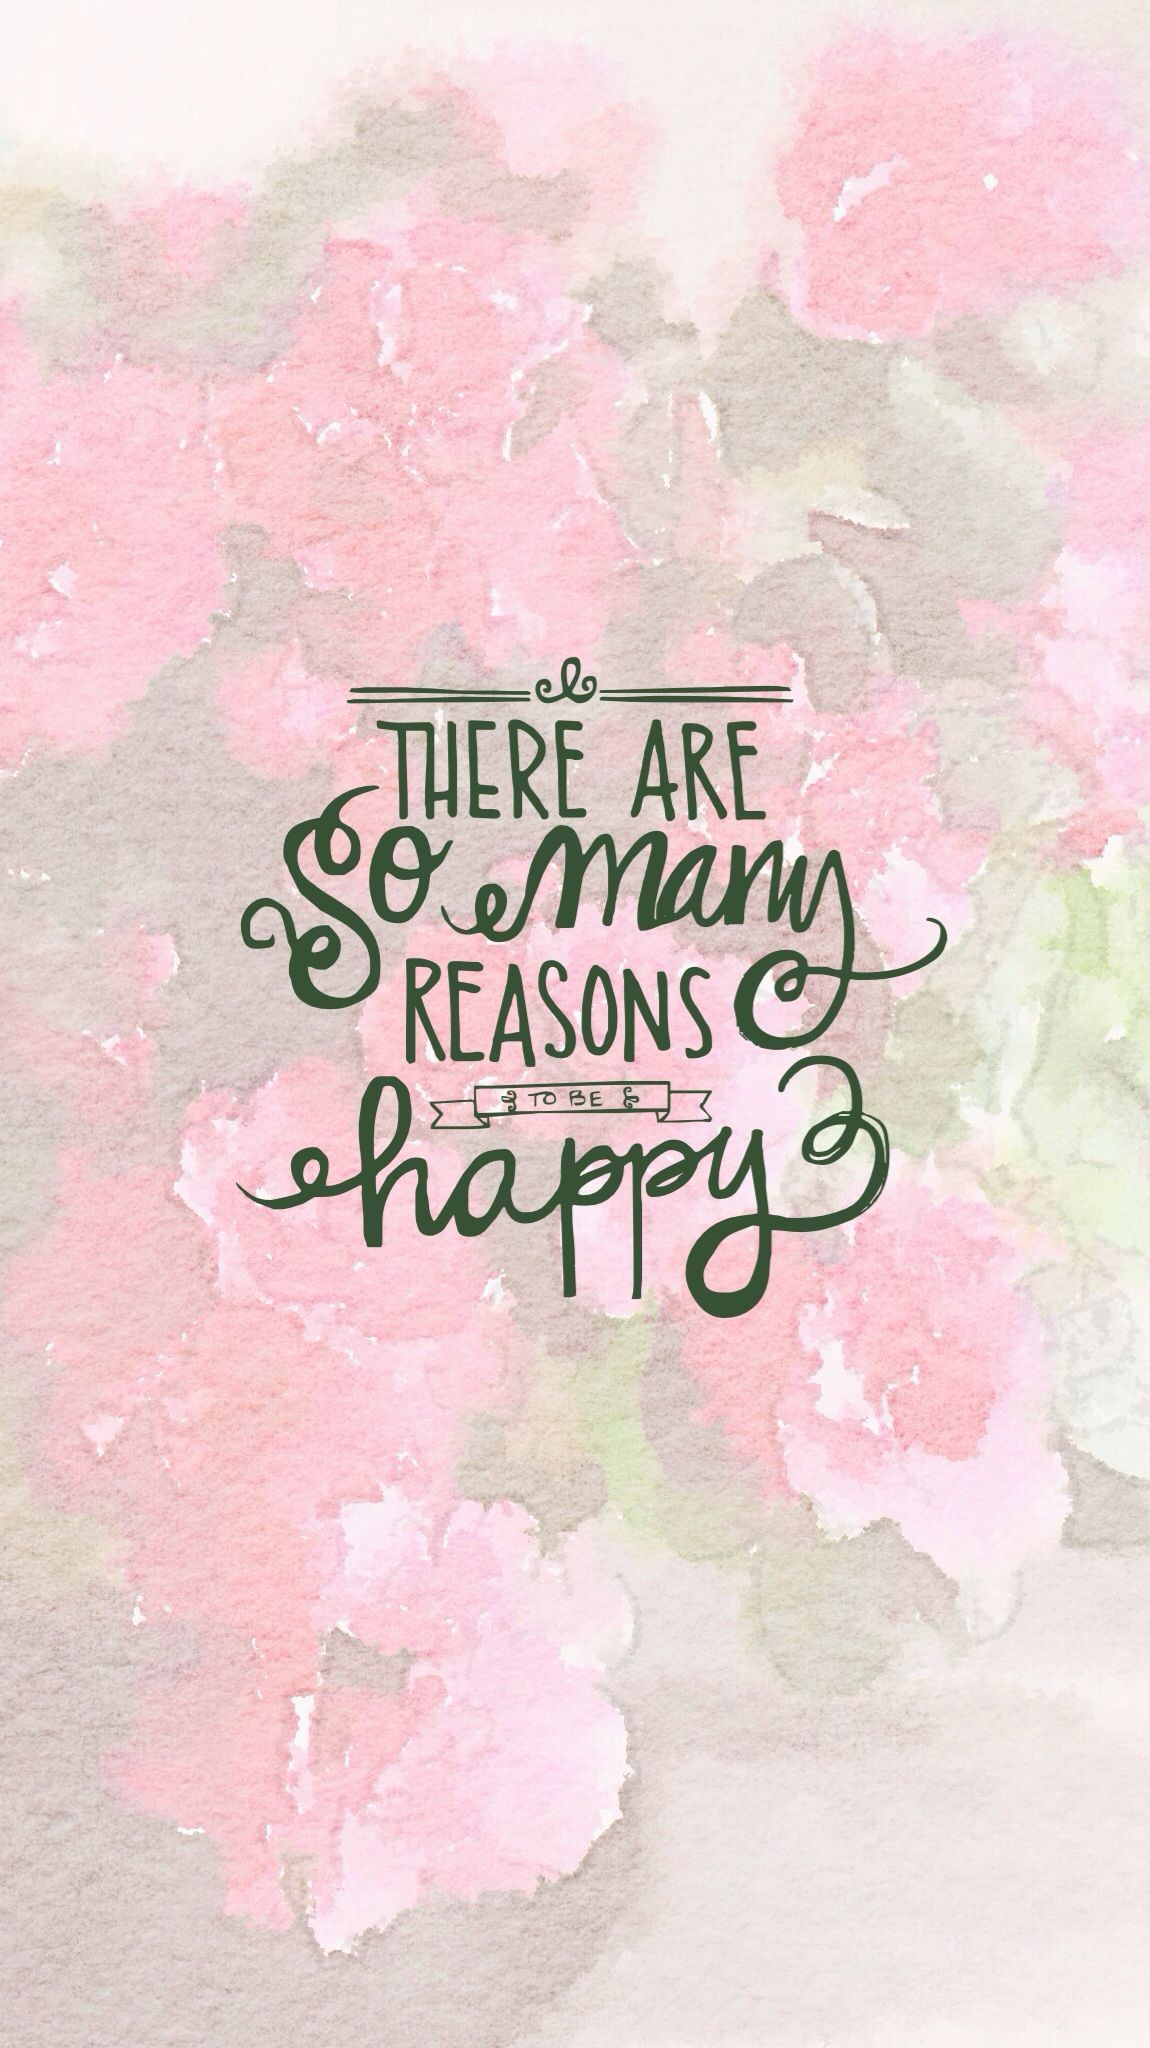 There are so many reason to be happy. iPhone Wallpapers Quotes about  happiness and life. Be Happy!